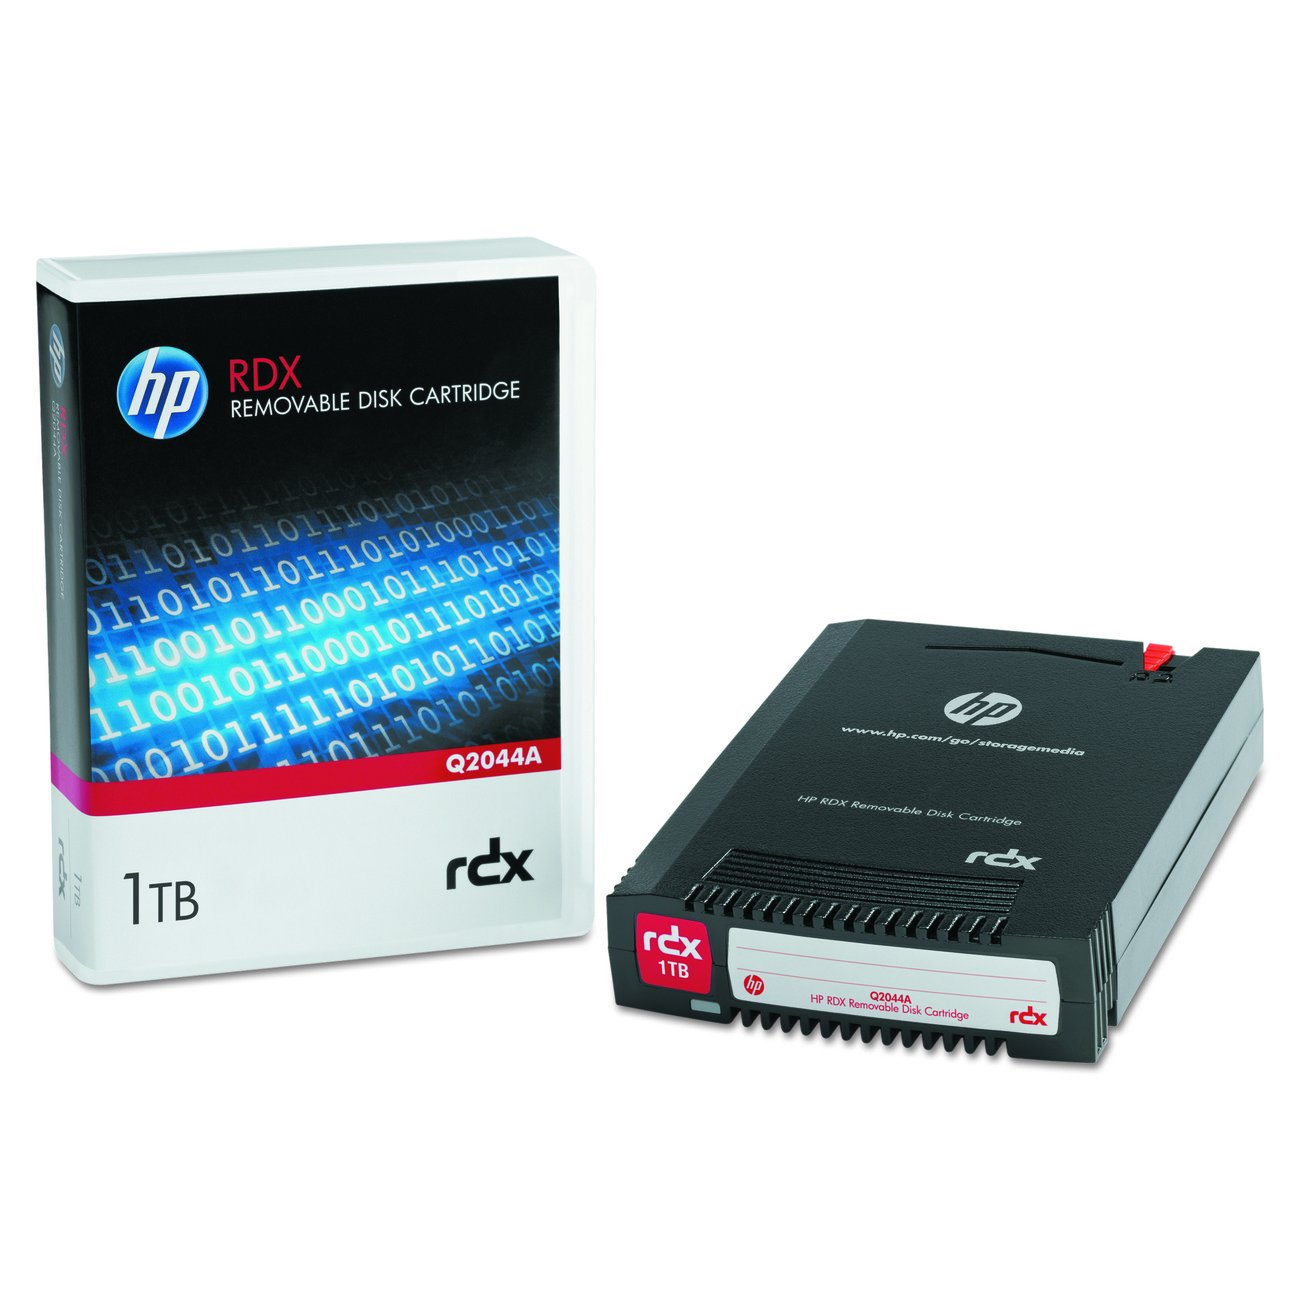 Rdx 1TB Cartridge Removable Disk by HP